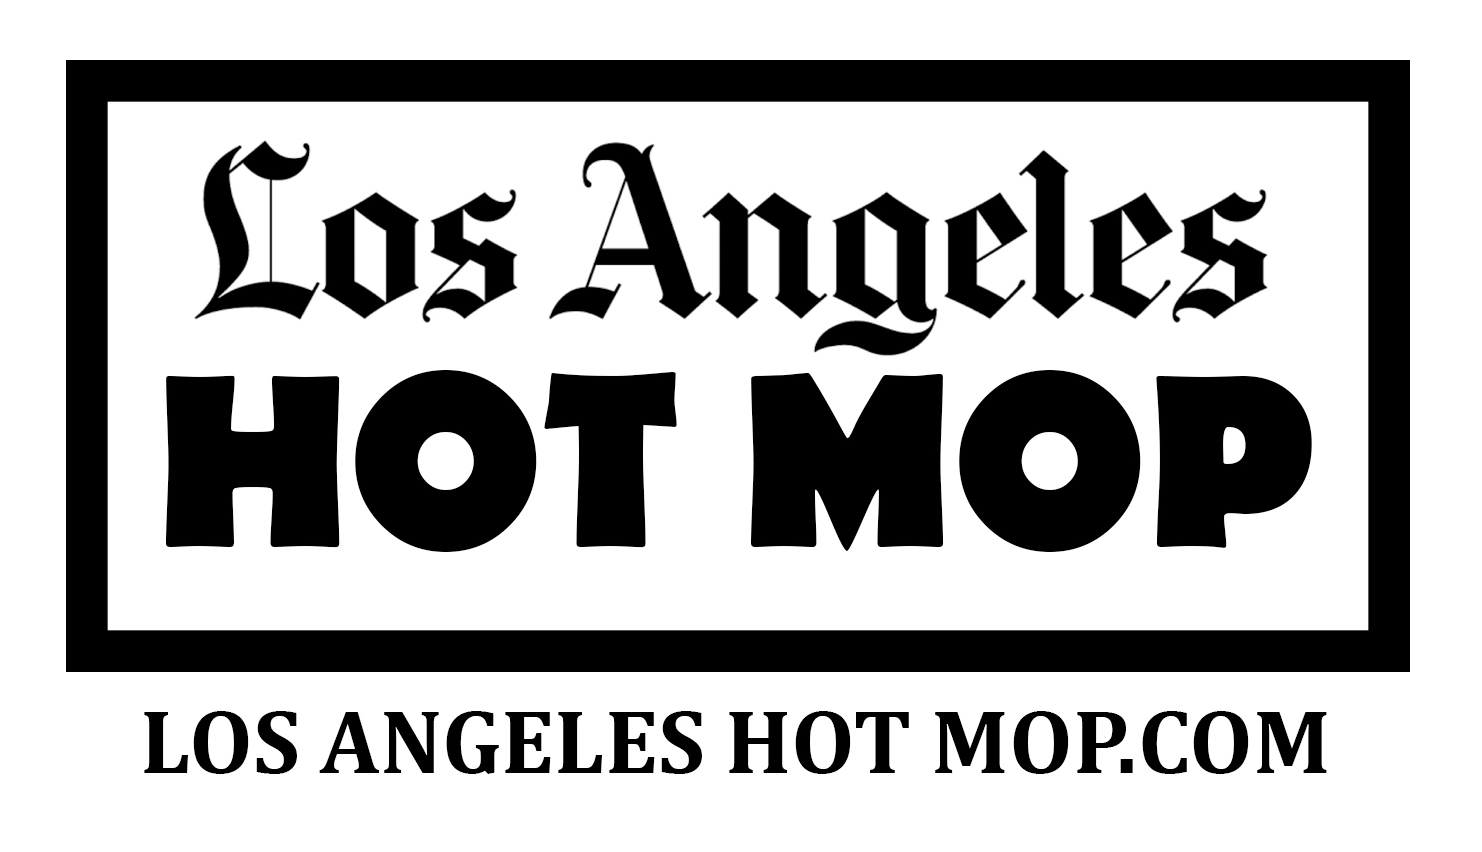 Los Angeles Hot Mop